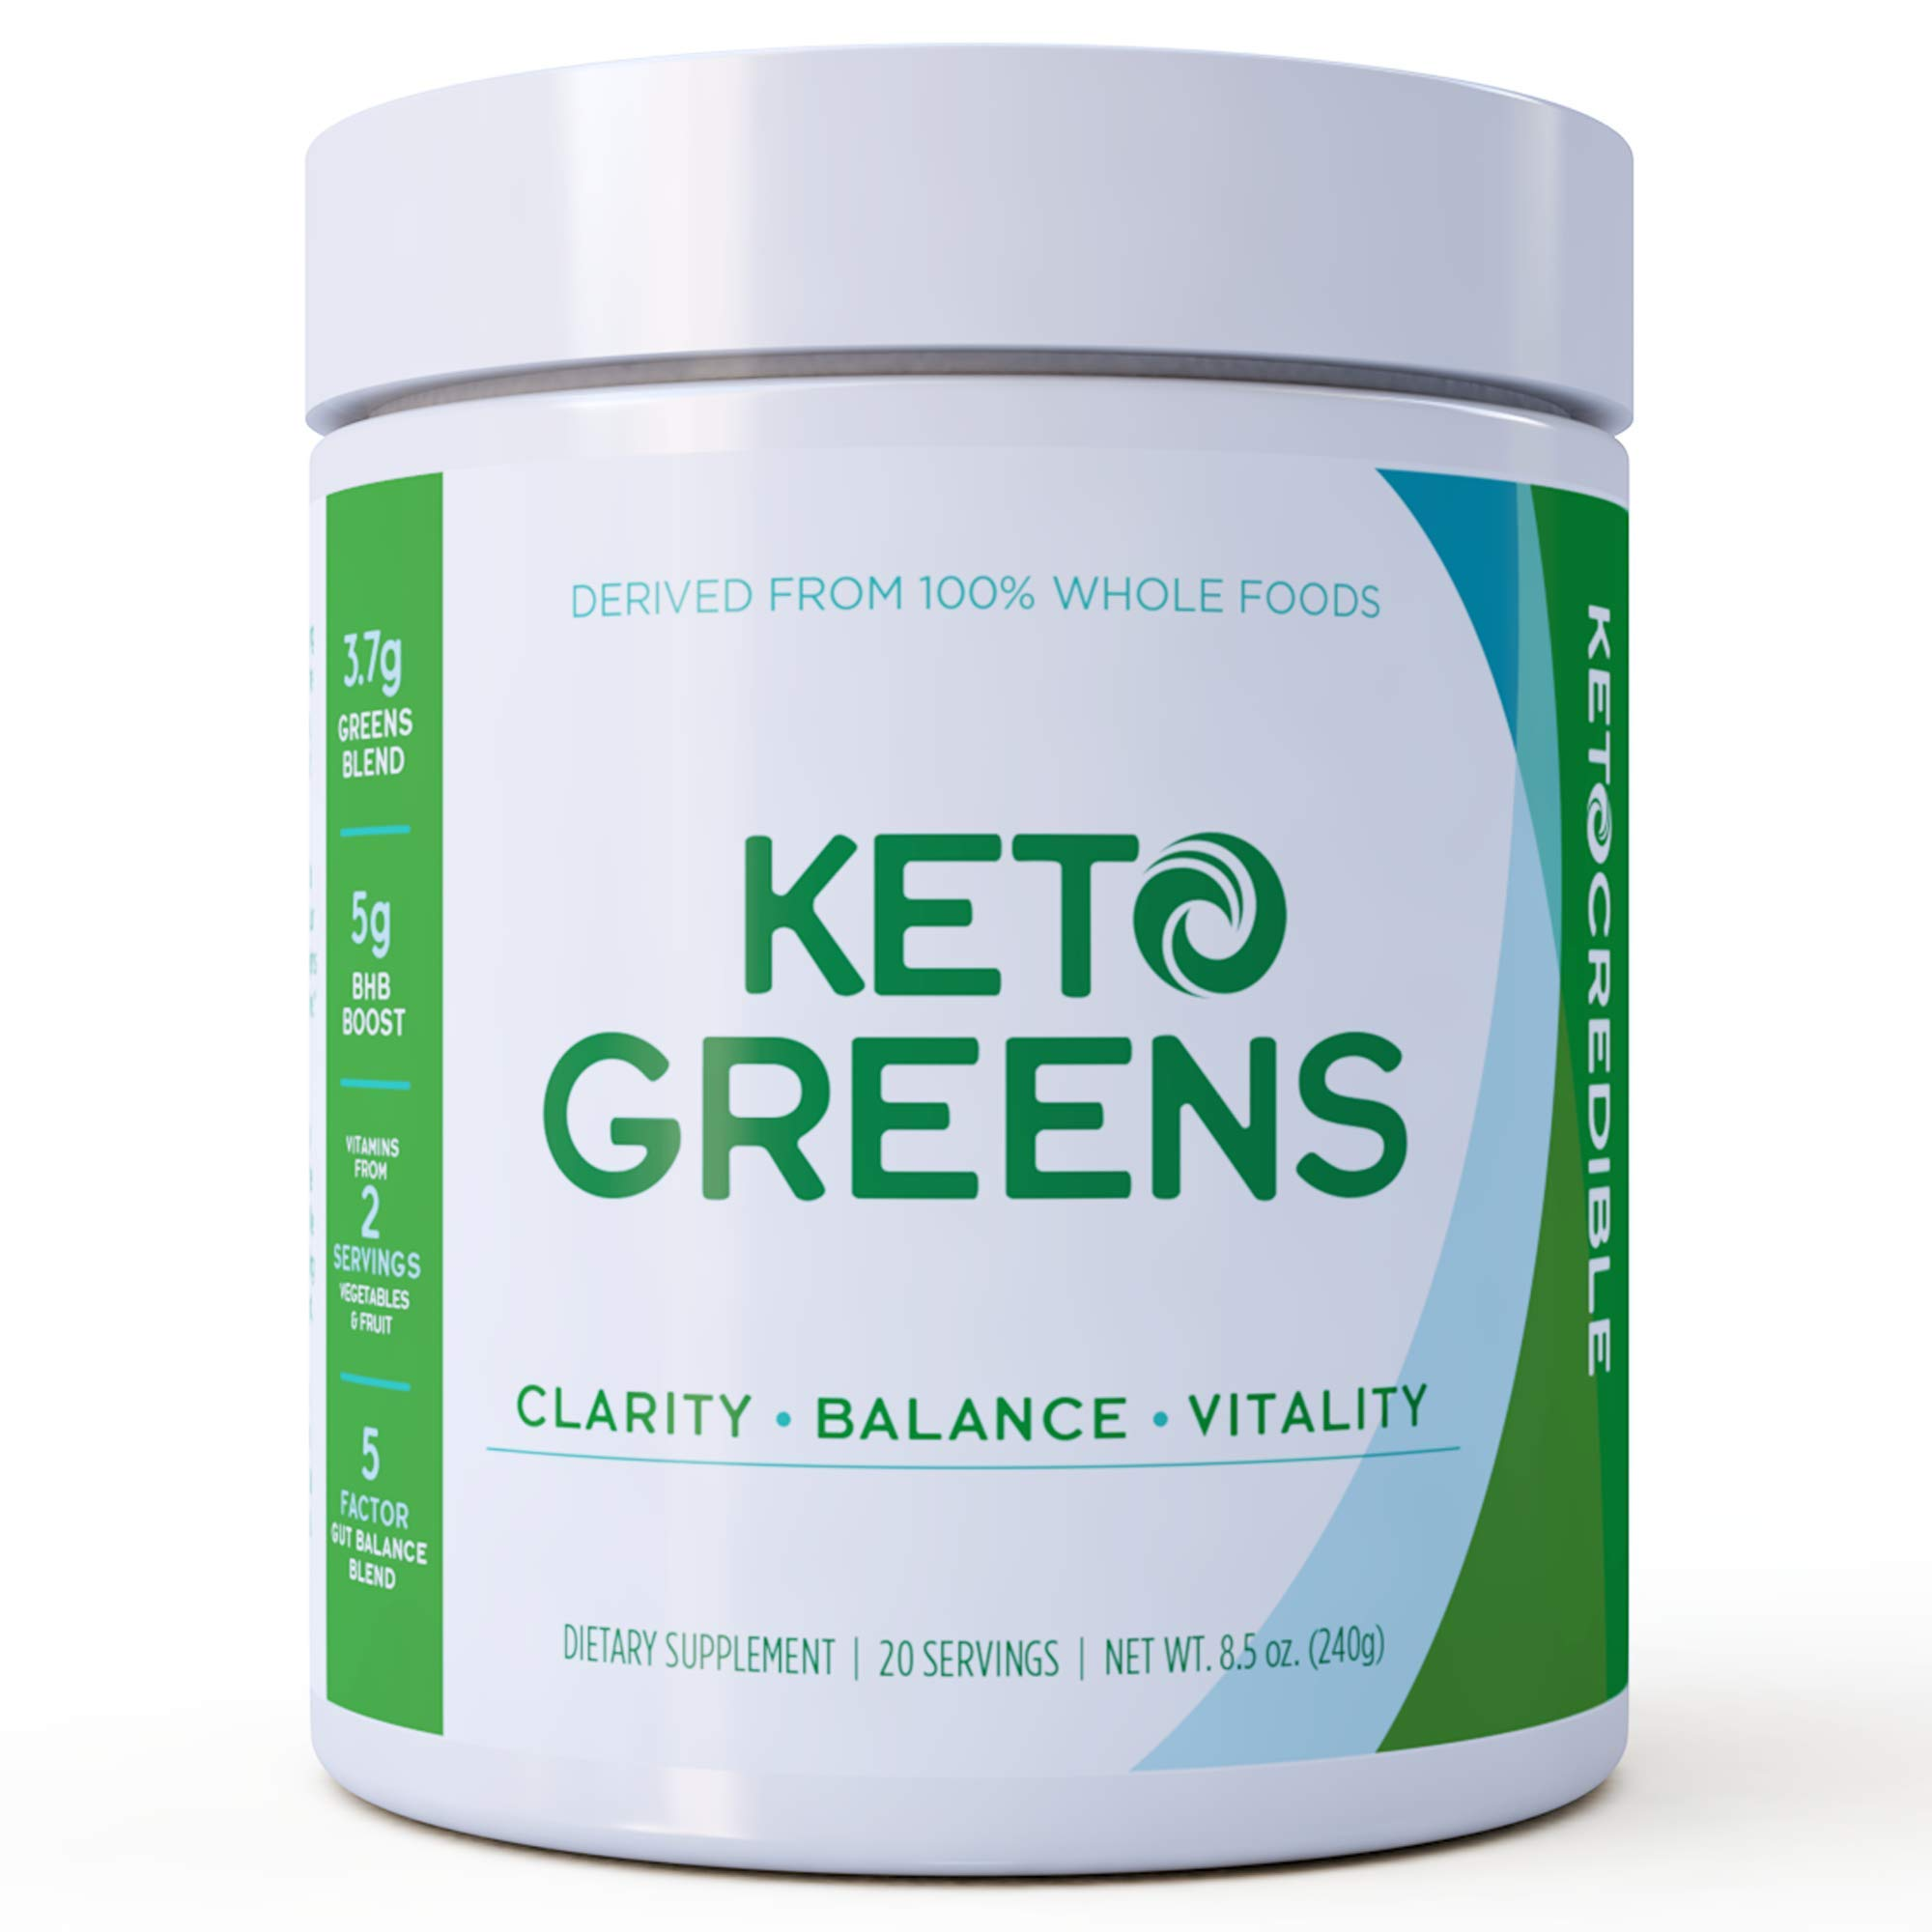 Keto Credible KetoGreens, Healthy Superfoods and Exogenous Ketones in One Drink, Optimized to Burn Fat, Increase Energy/Clarity and Jump-Start Ketosis